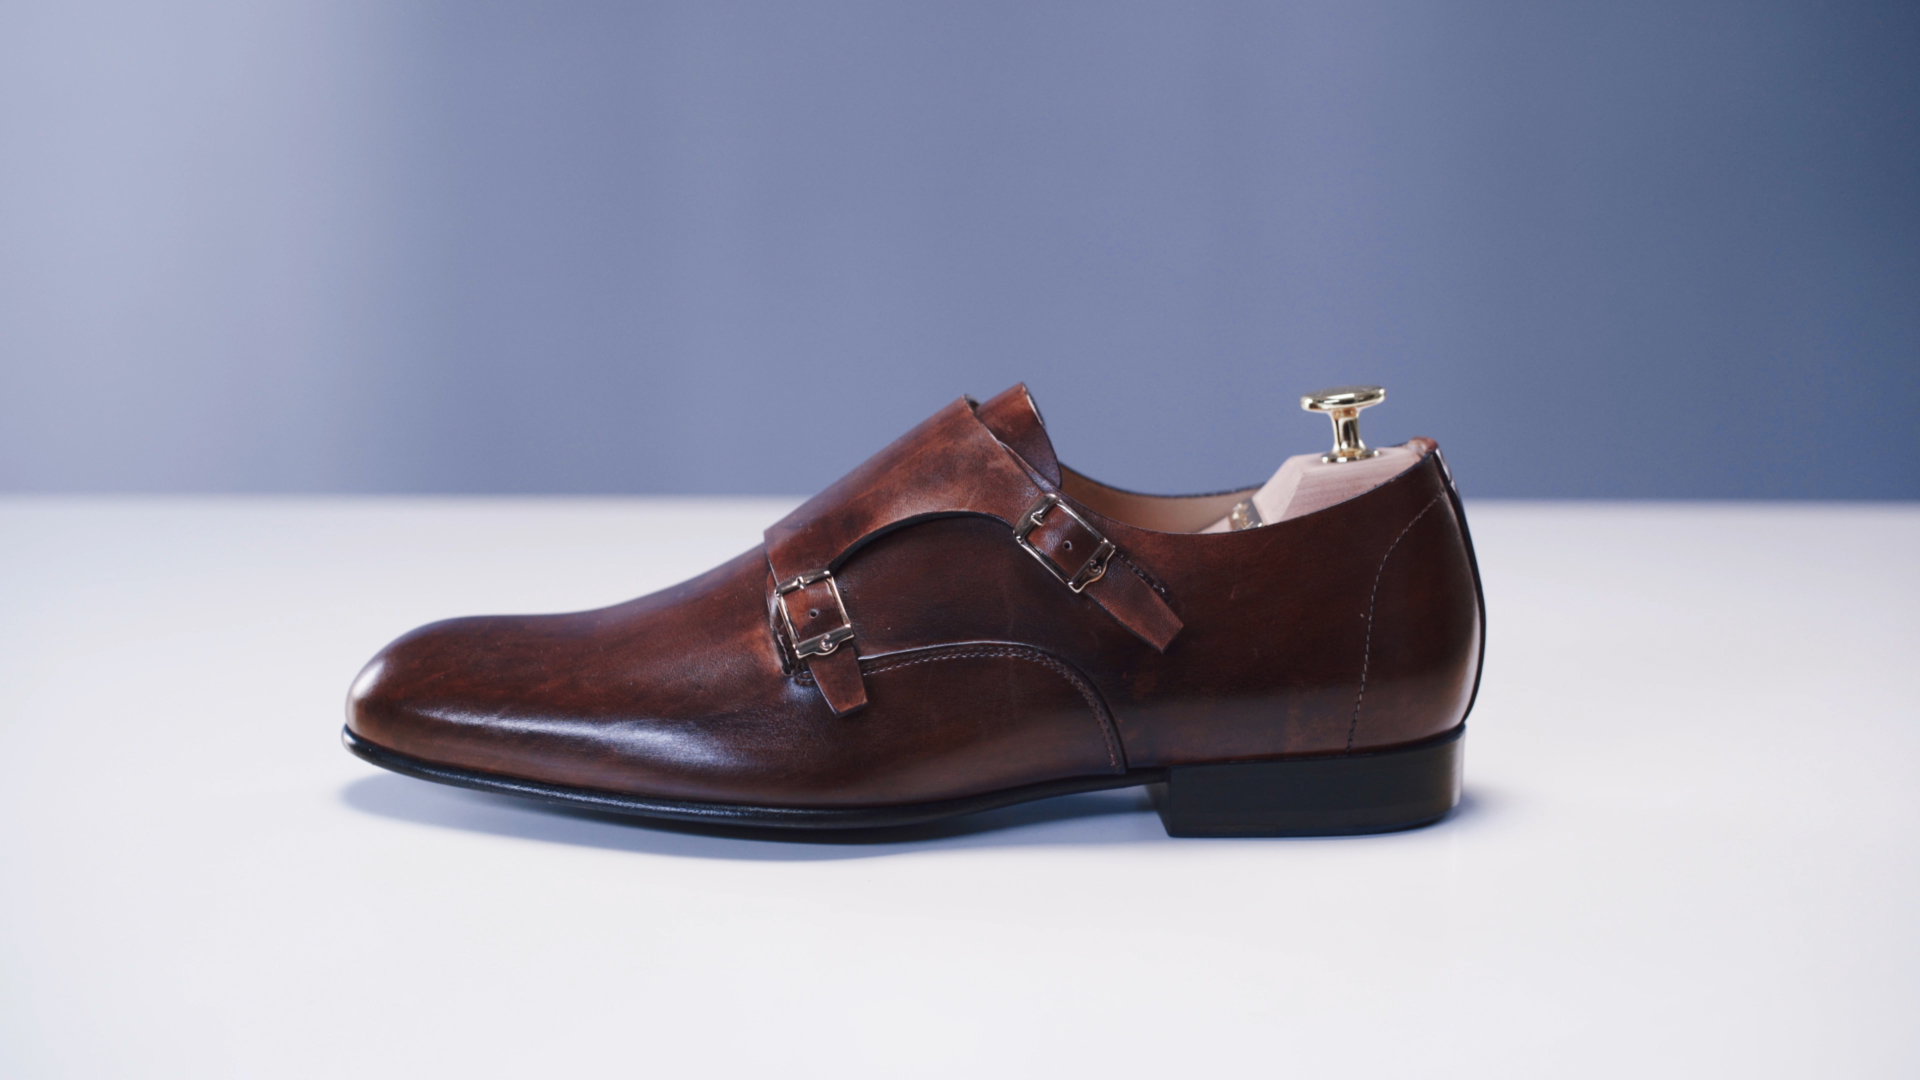 Conhpol - made by hand of 100% leather 14